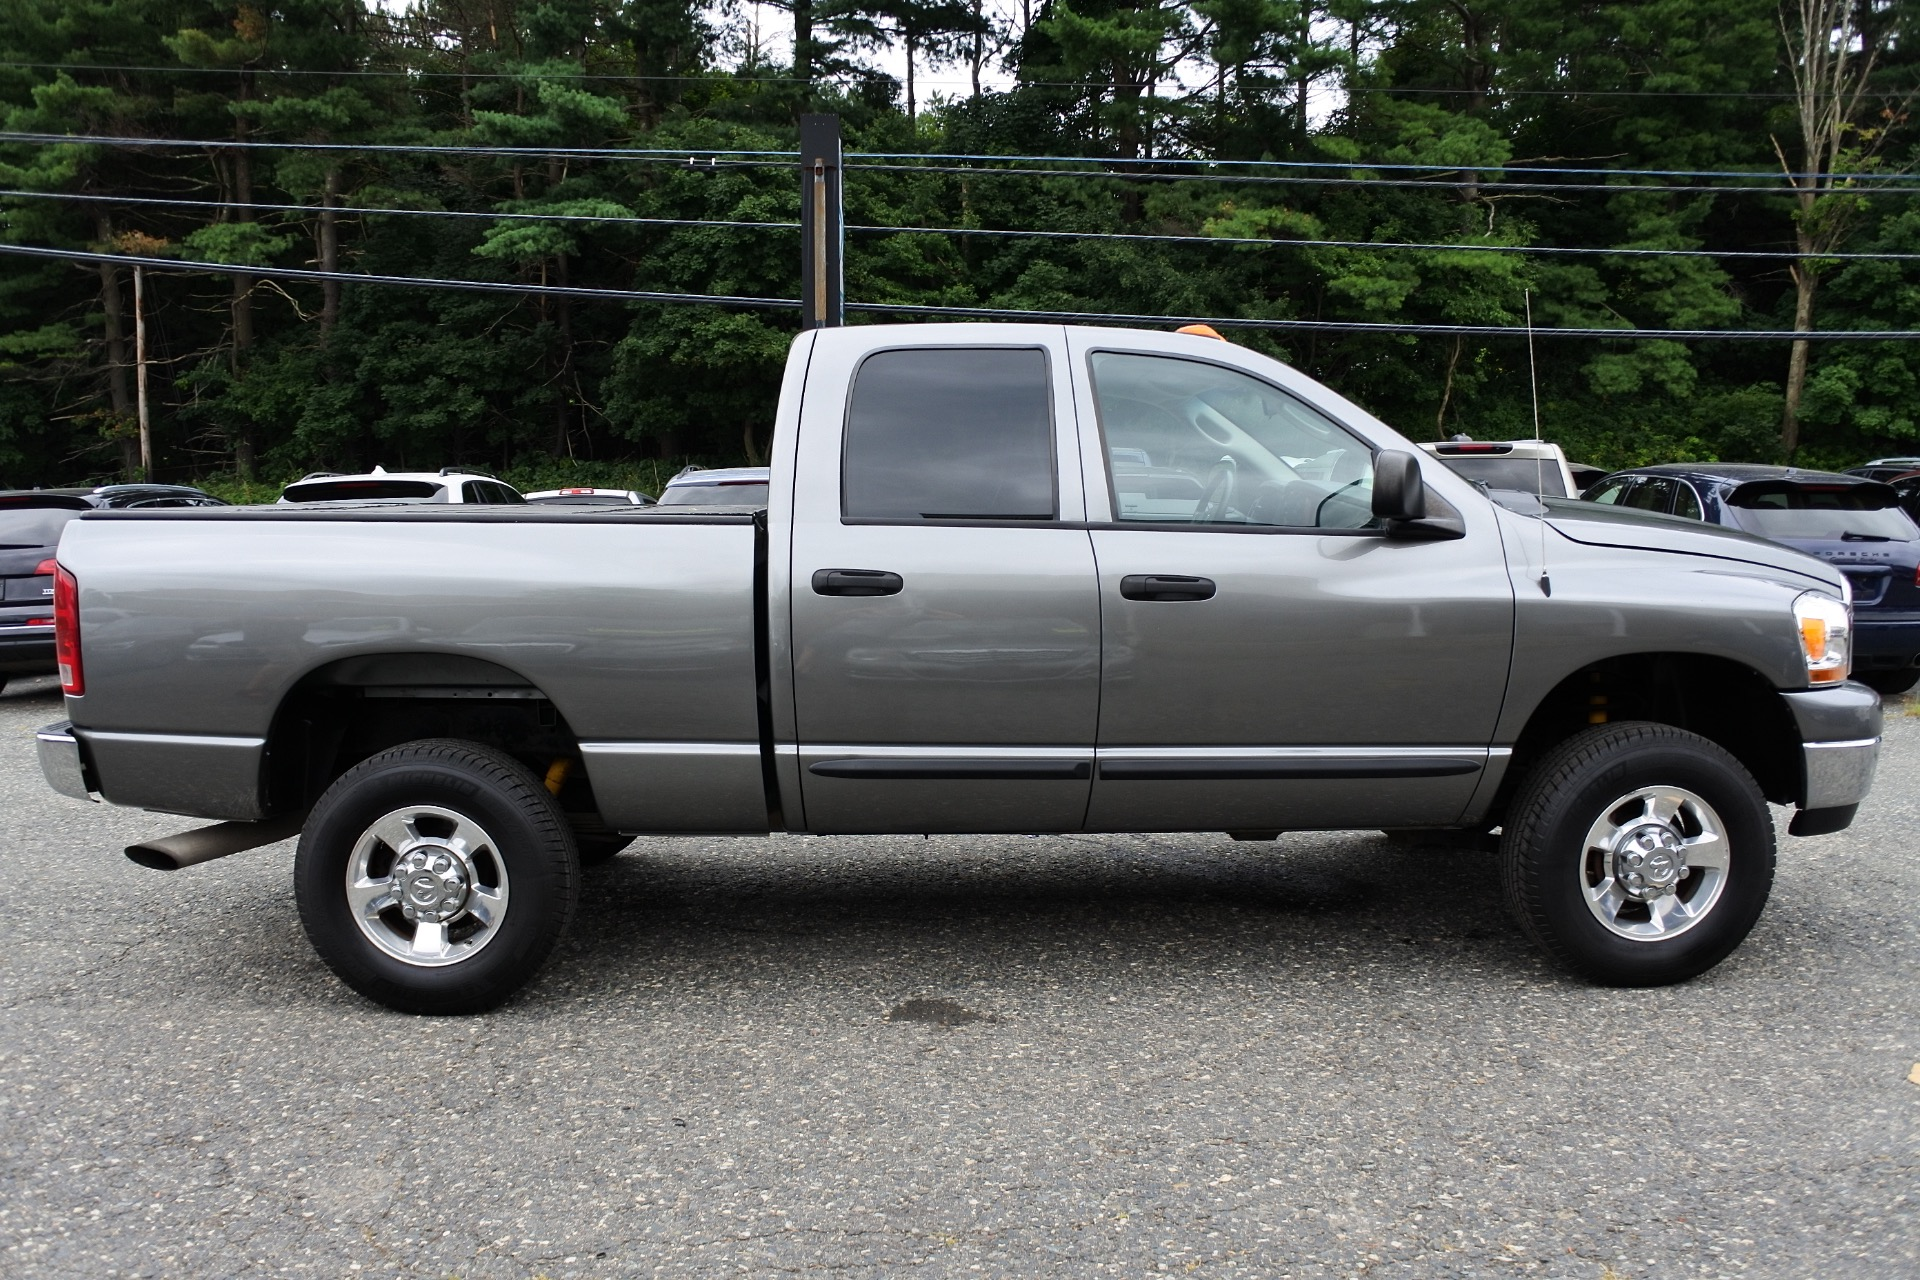 Used 2006 Dodge Ram 2500 4dr Quad Cab 140.5 4WD SLT Used 2006 Dodge Ram 2500 4dr Quad Cab 140.5 4WD SLT for sale  at Metro West Motorcars LLC in Shrewsbury MA 6